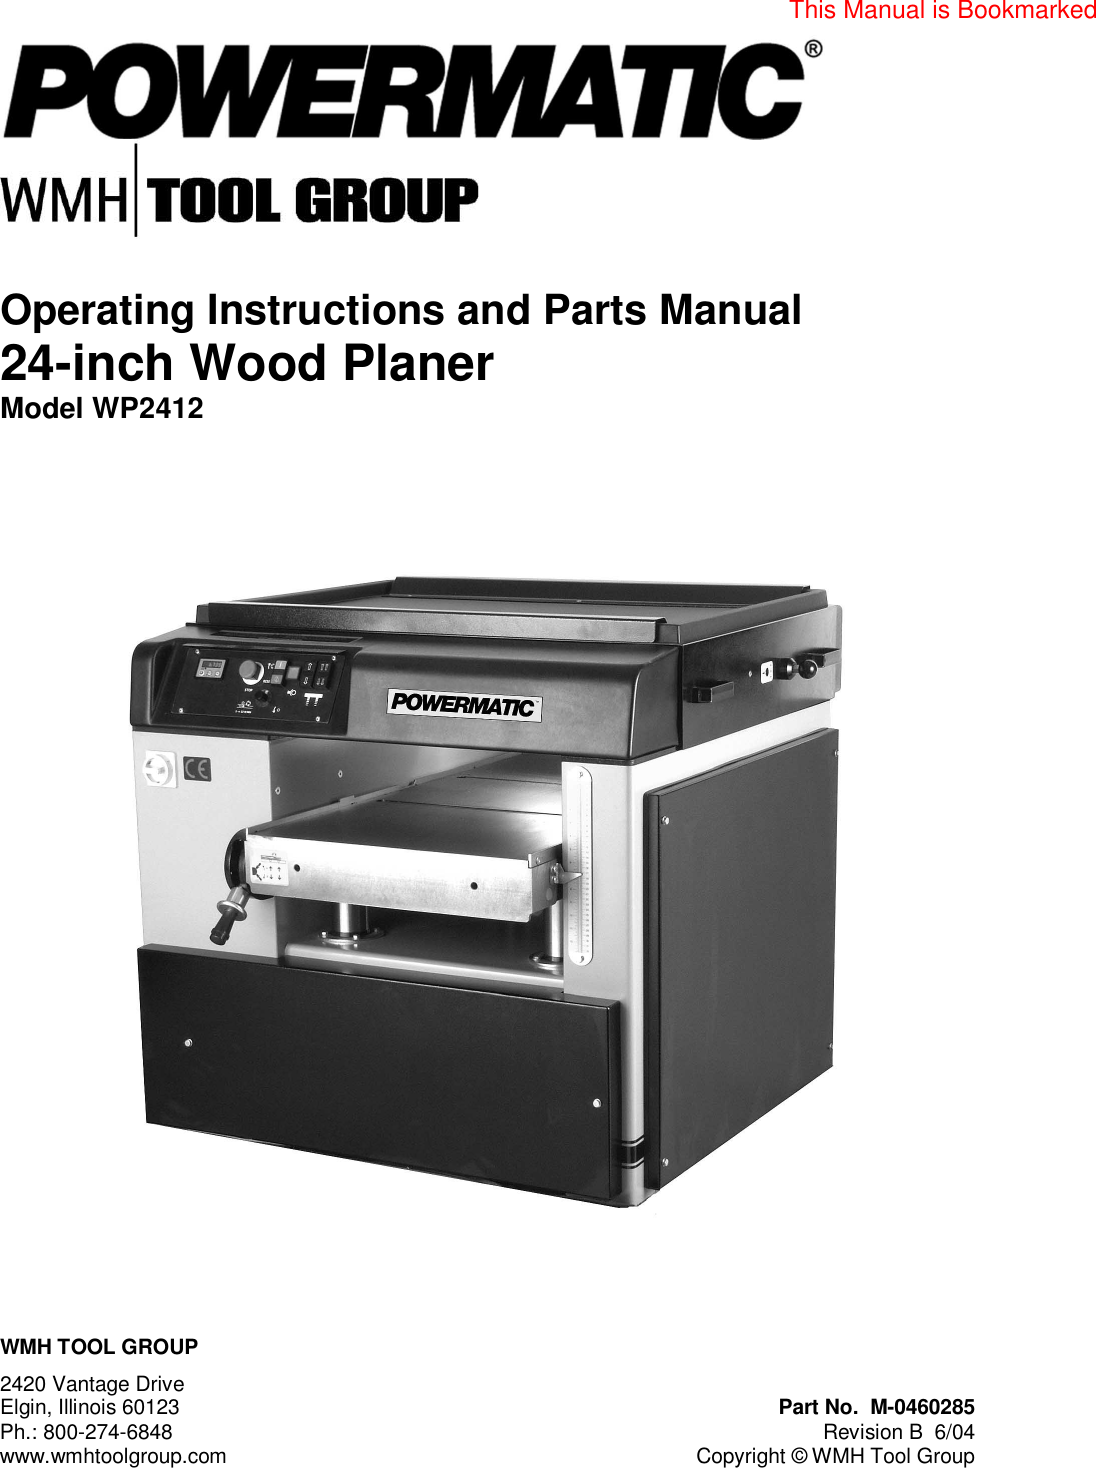 Powermatic planer 160 manual ebook array powermatic wp2412 users manual m 0460285 planer rev b rh usermanual wiki solutioingenieria Gallery